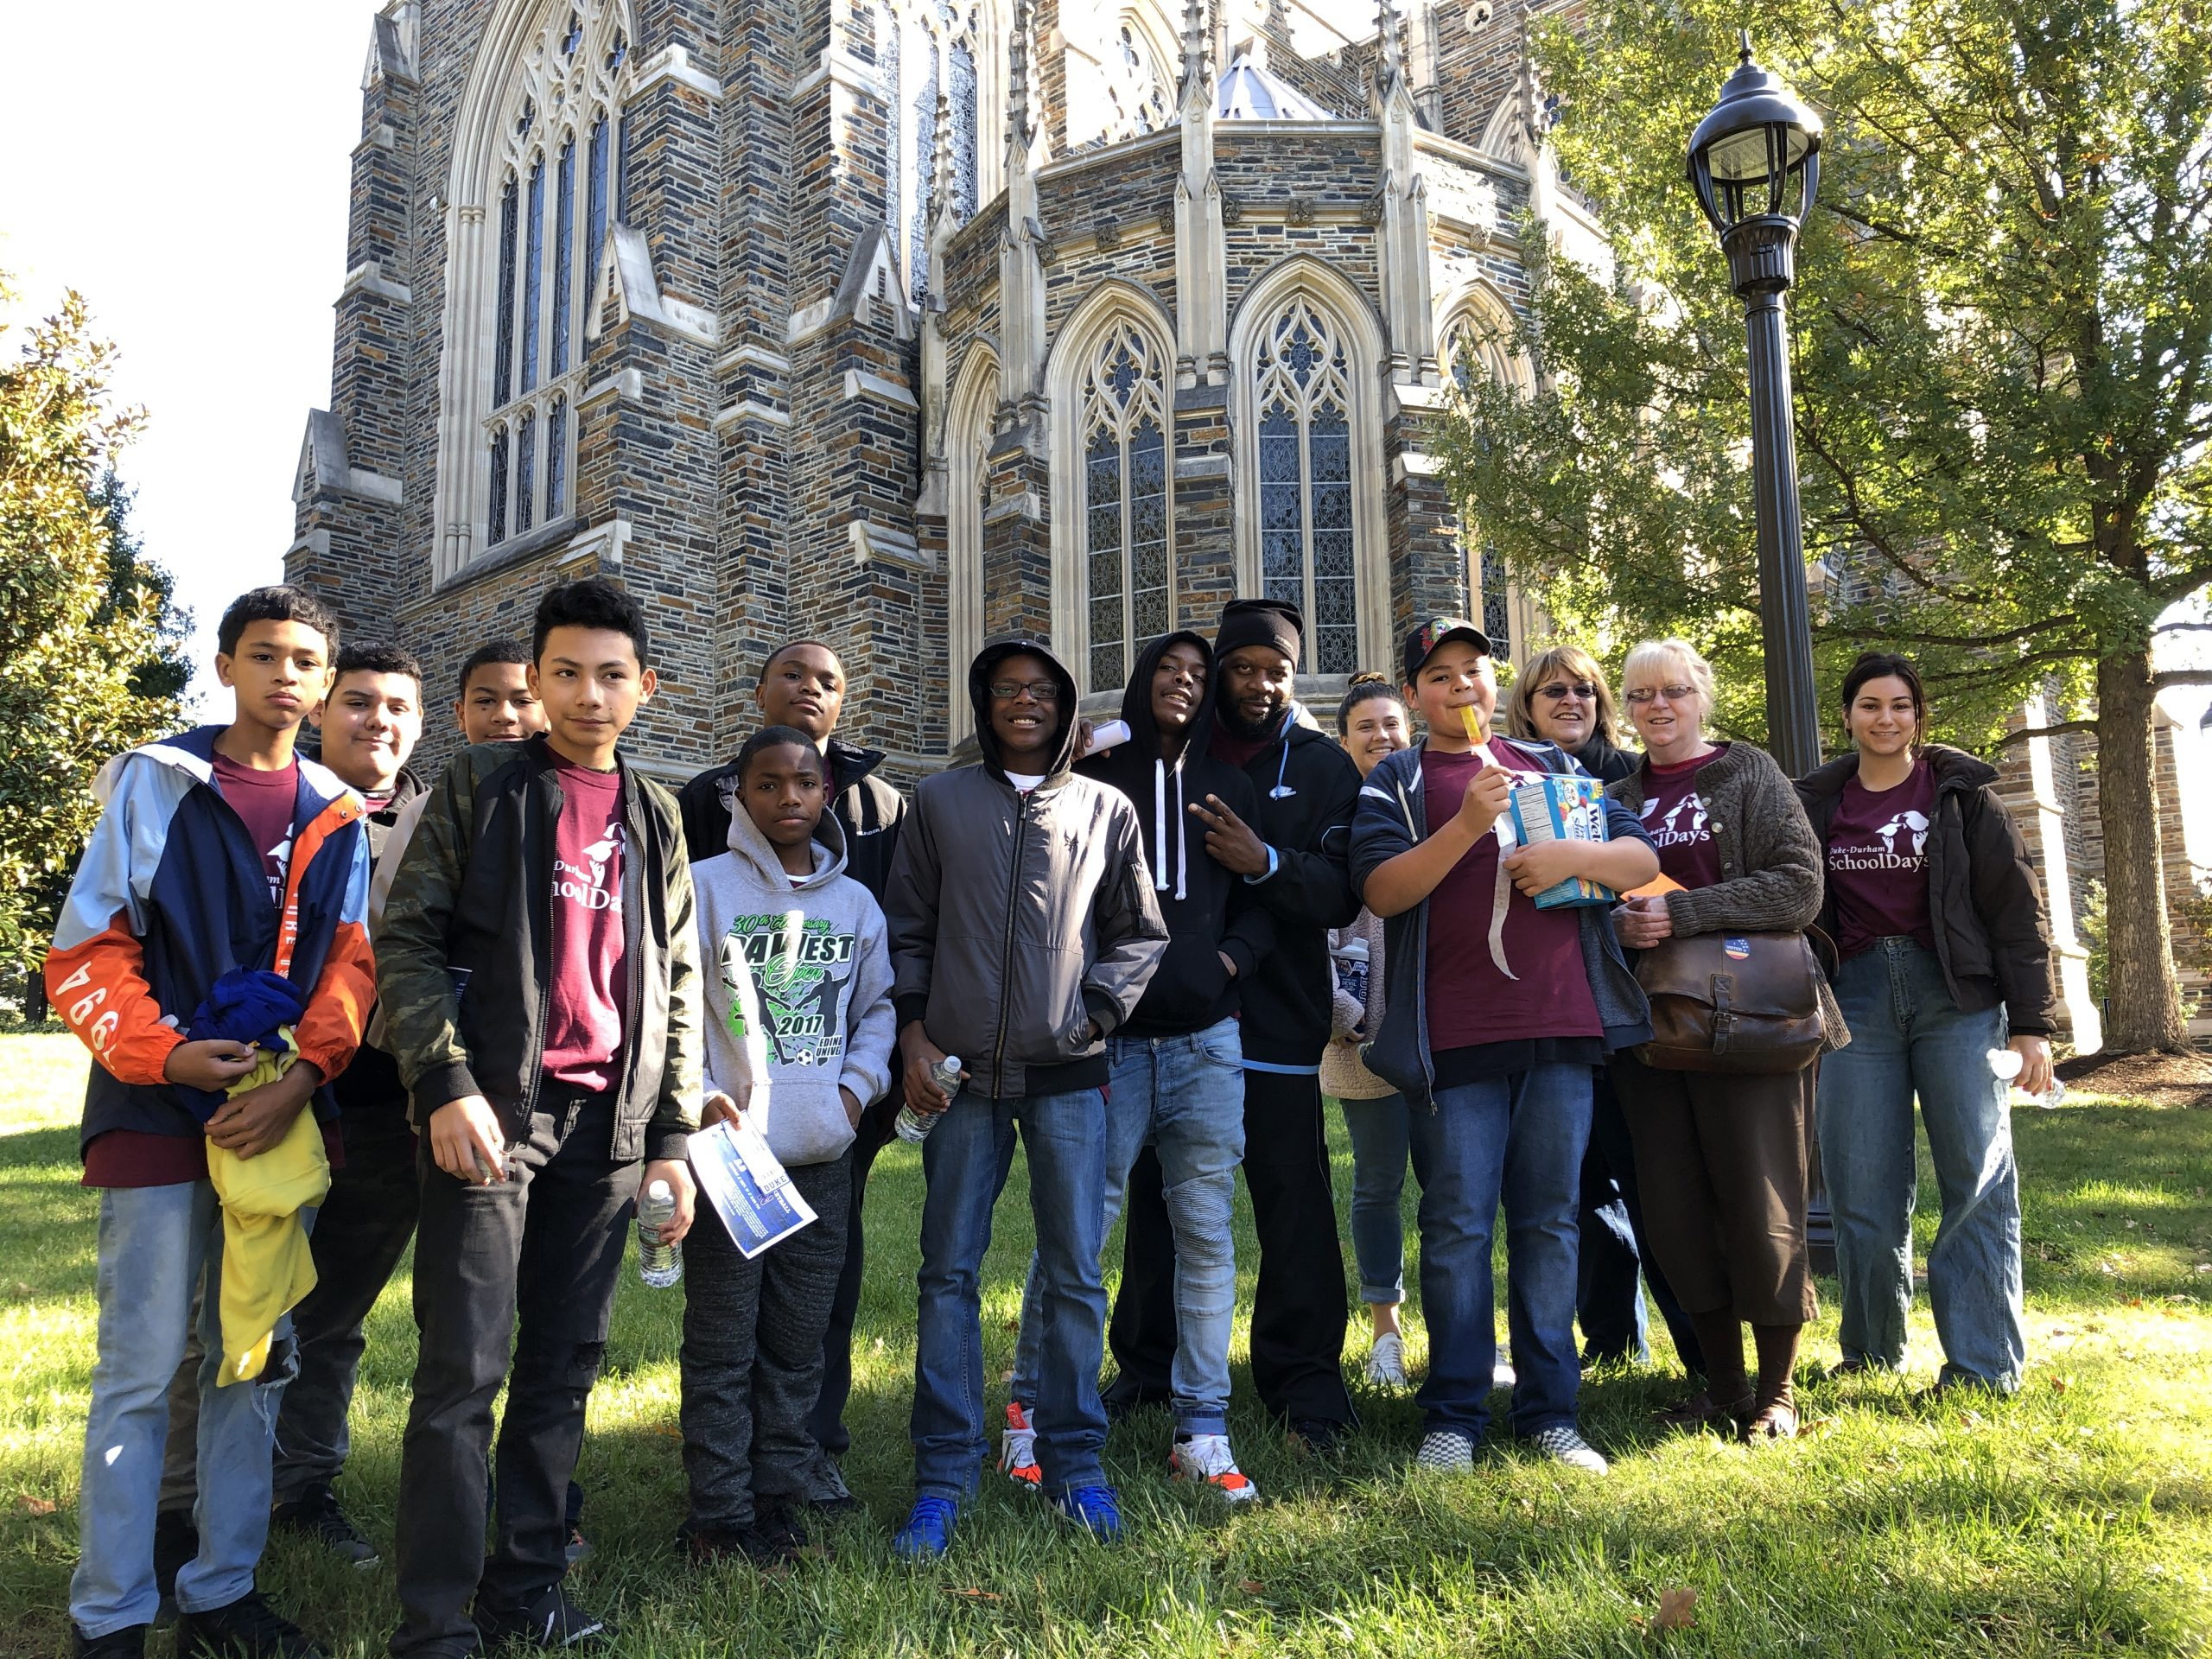 A group of middle school students pose in front of Duke chapel